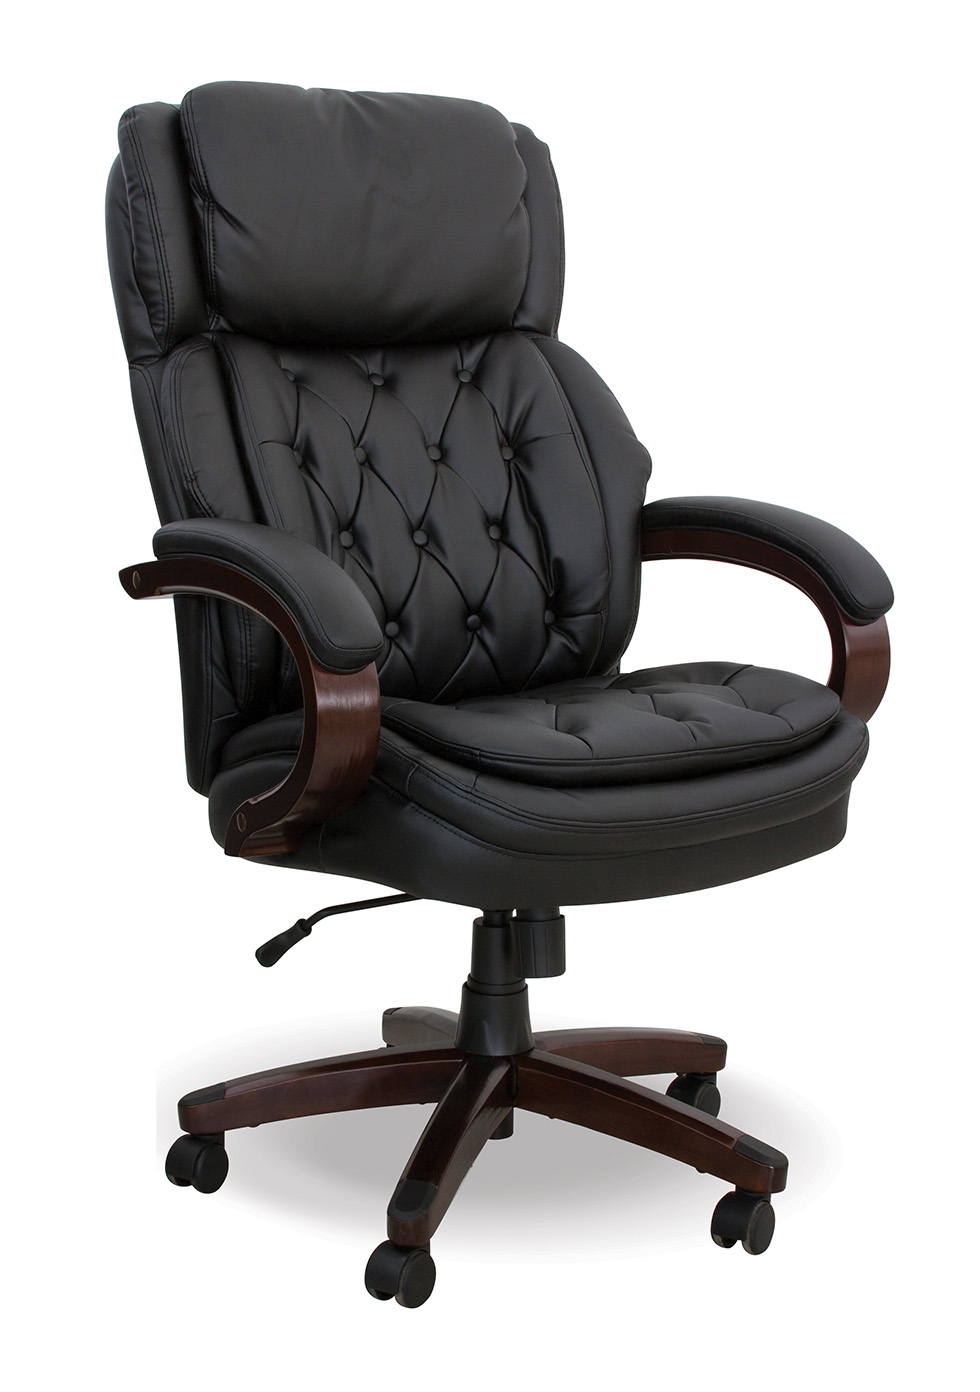 High Back Office Chair Of Superior Quality And